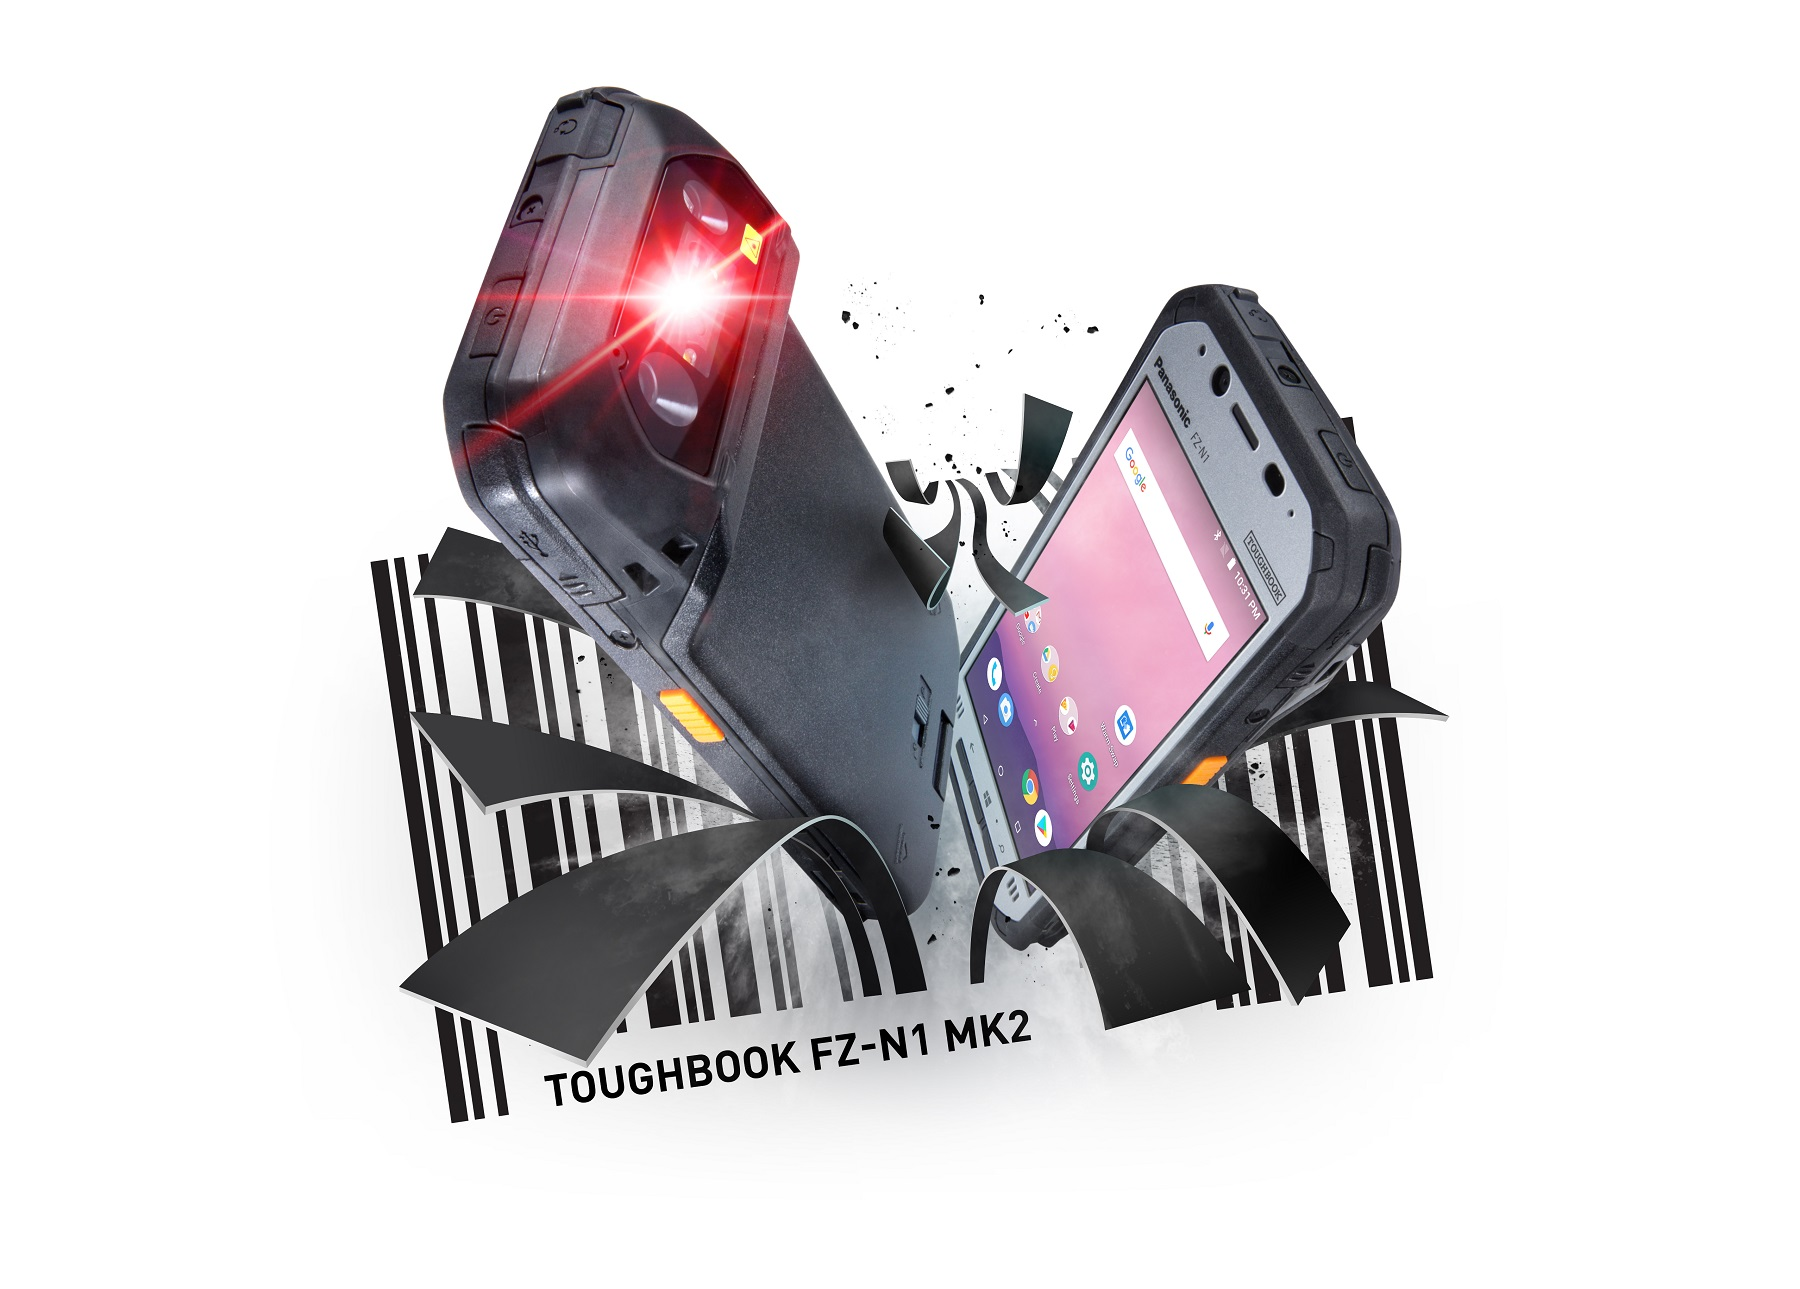 https://itsupplychain.com/wp-content/uploads/2018/10/Panasonic-TOUGHBOOK-FZ-N1-with-integrated-angled-barcode-reader-for-mobile-workers-1800-x.jpg